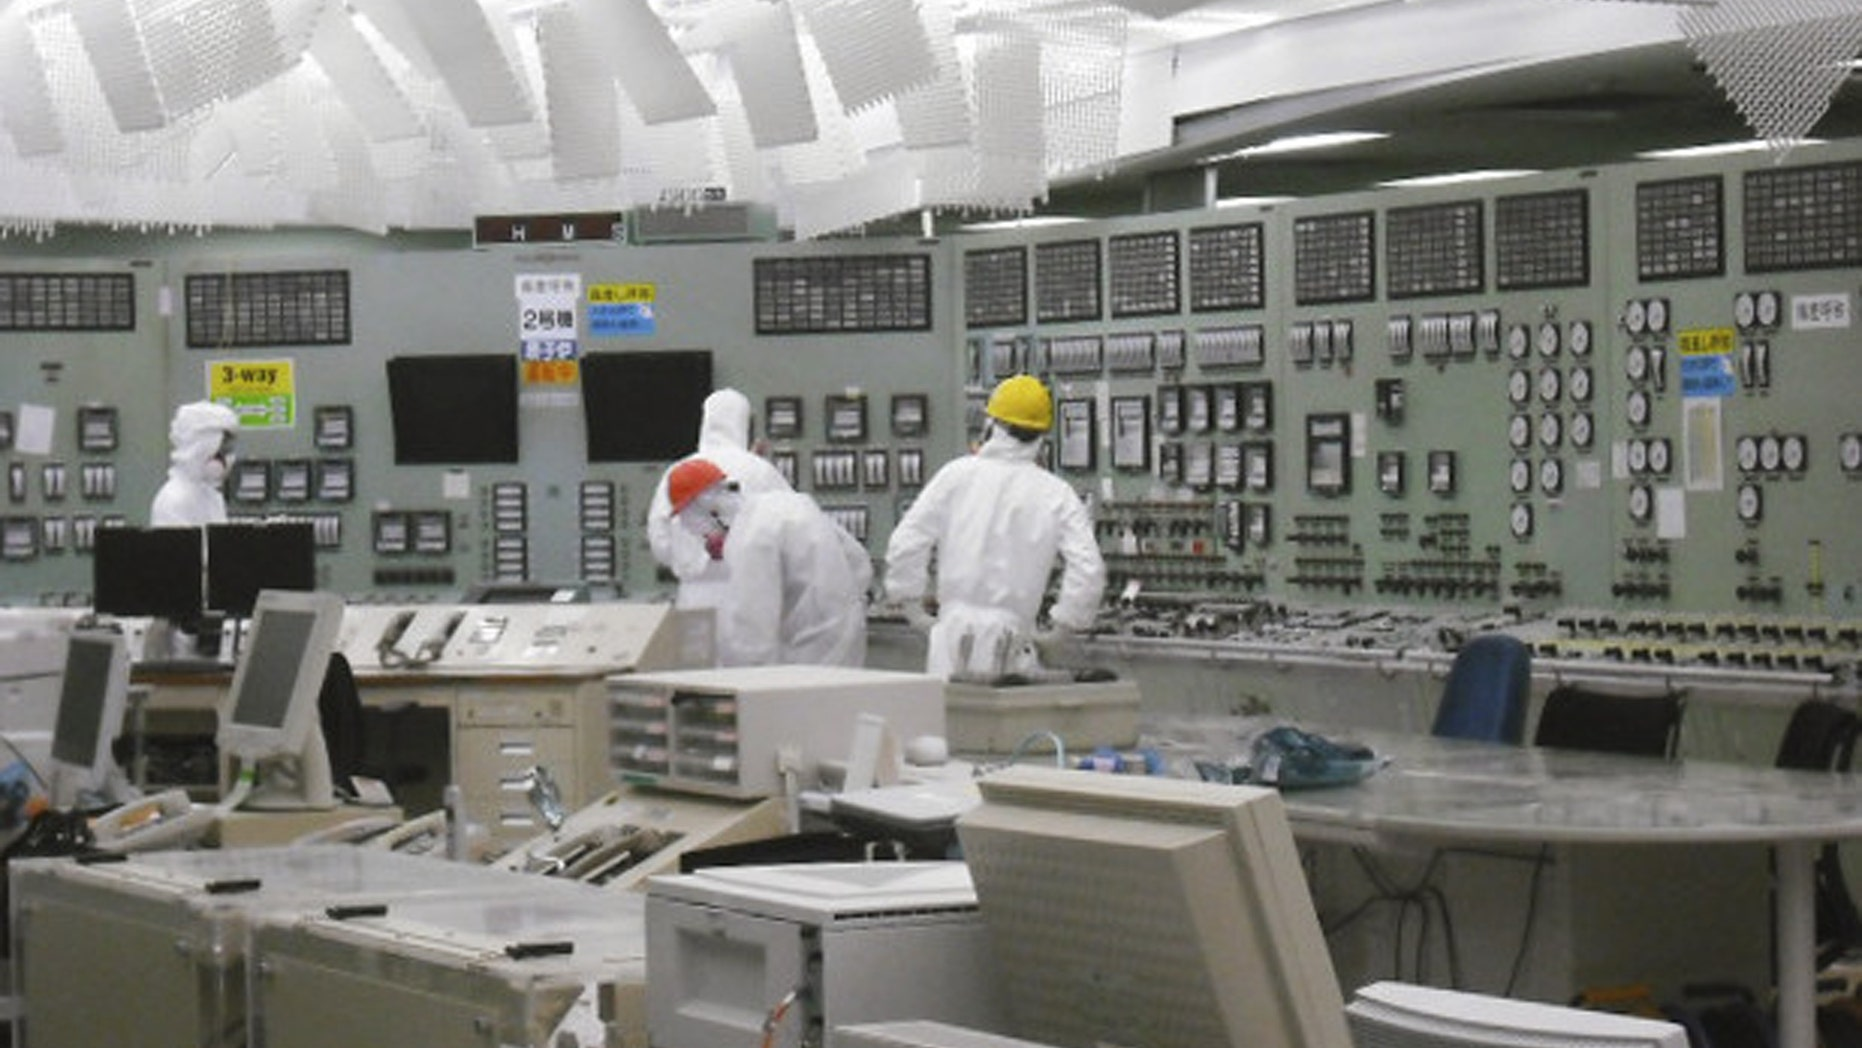 March 26: In this photo released by Tokyo Electric Power Co. via Kyodo News, lighting becomes available in the control room of Unit 2 reactor at the stricken Fukushima Dai-ichi nuclear power plant in Okumamachi, Fukushima prefecture, Japan. (AP/TEPCO)